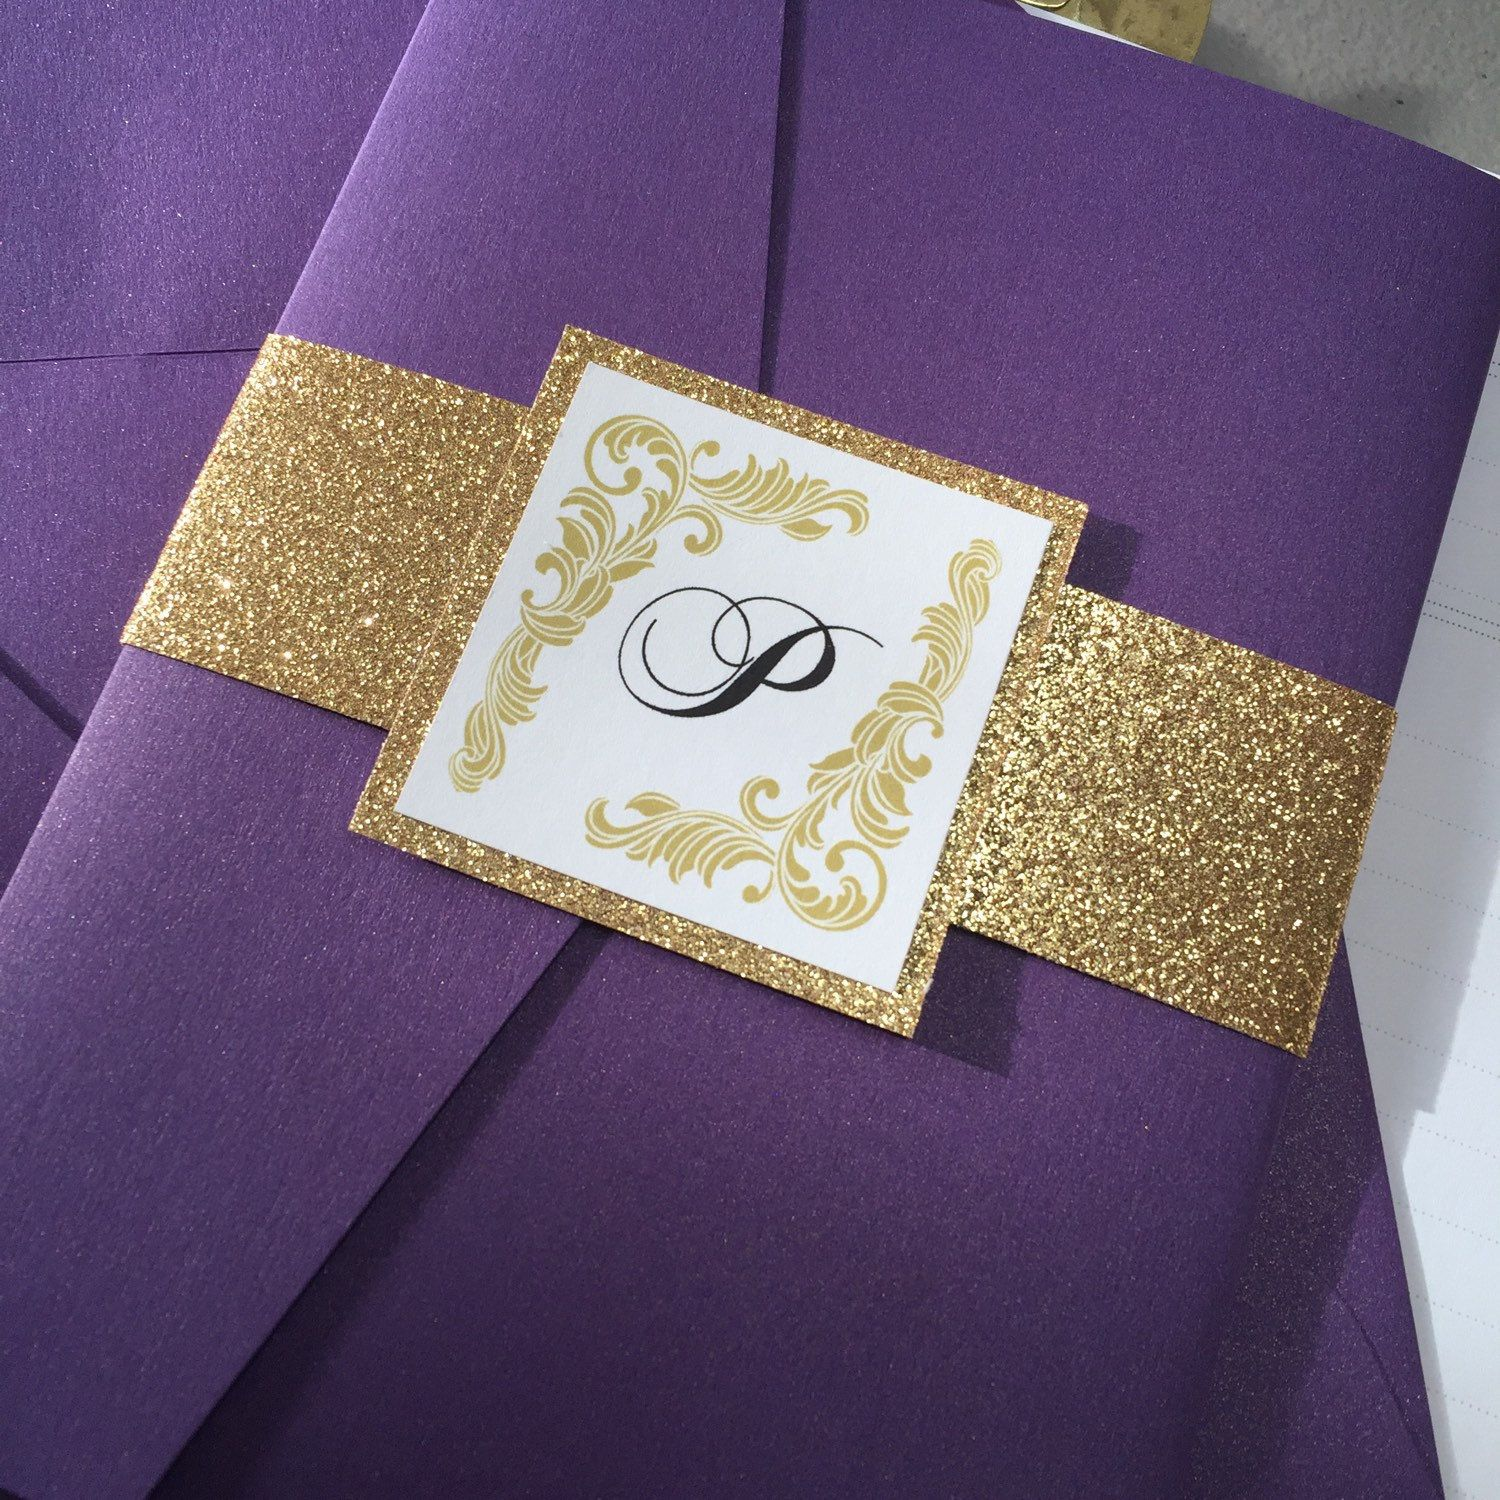 Gold And Purple Wedding Invitations: Offering Glitter Wedding Invitations & More